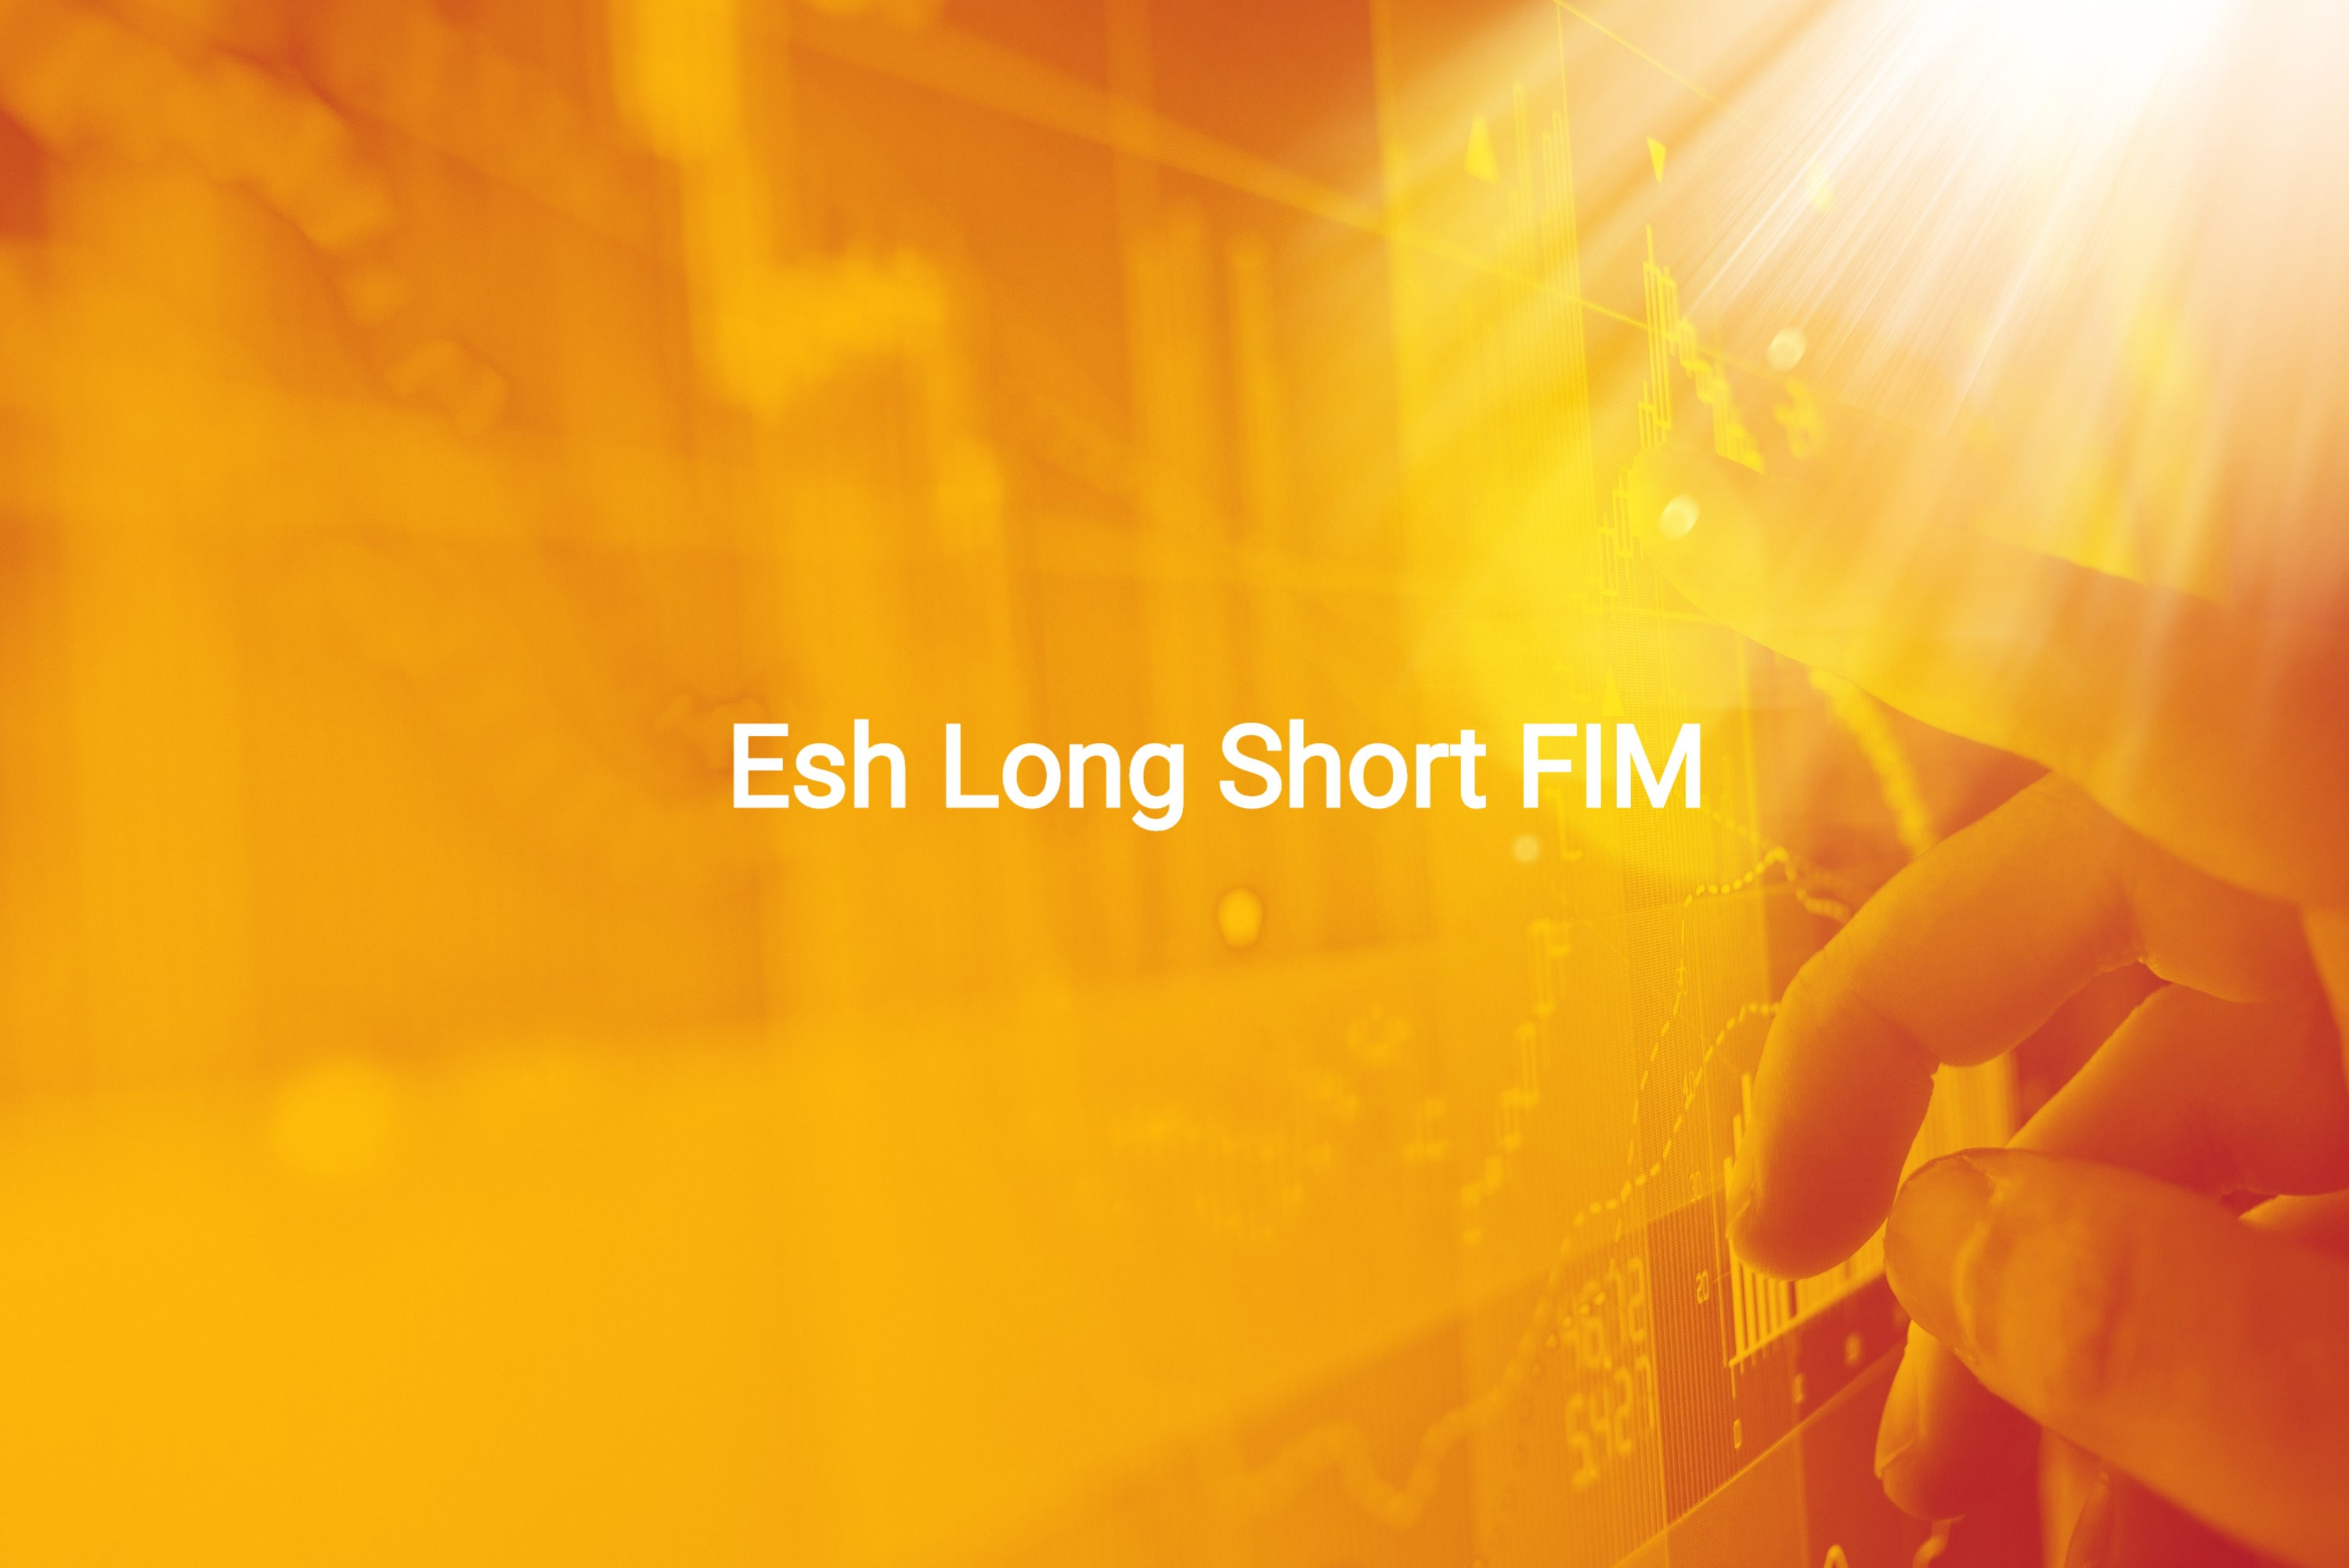 Esh Long Short FIM